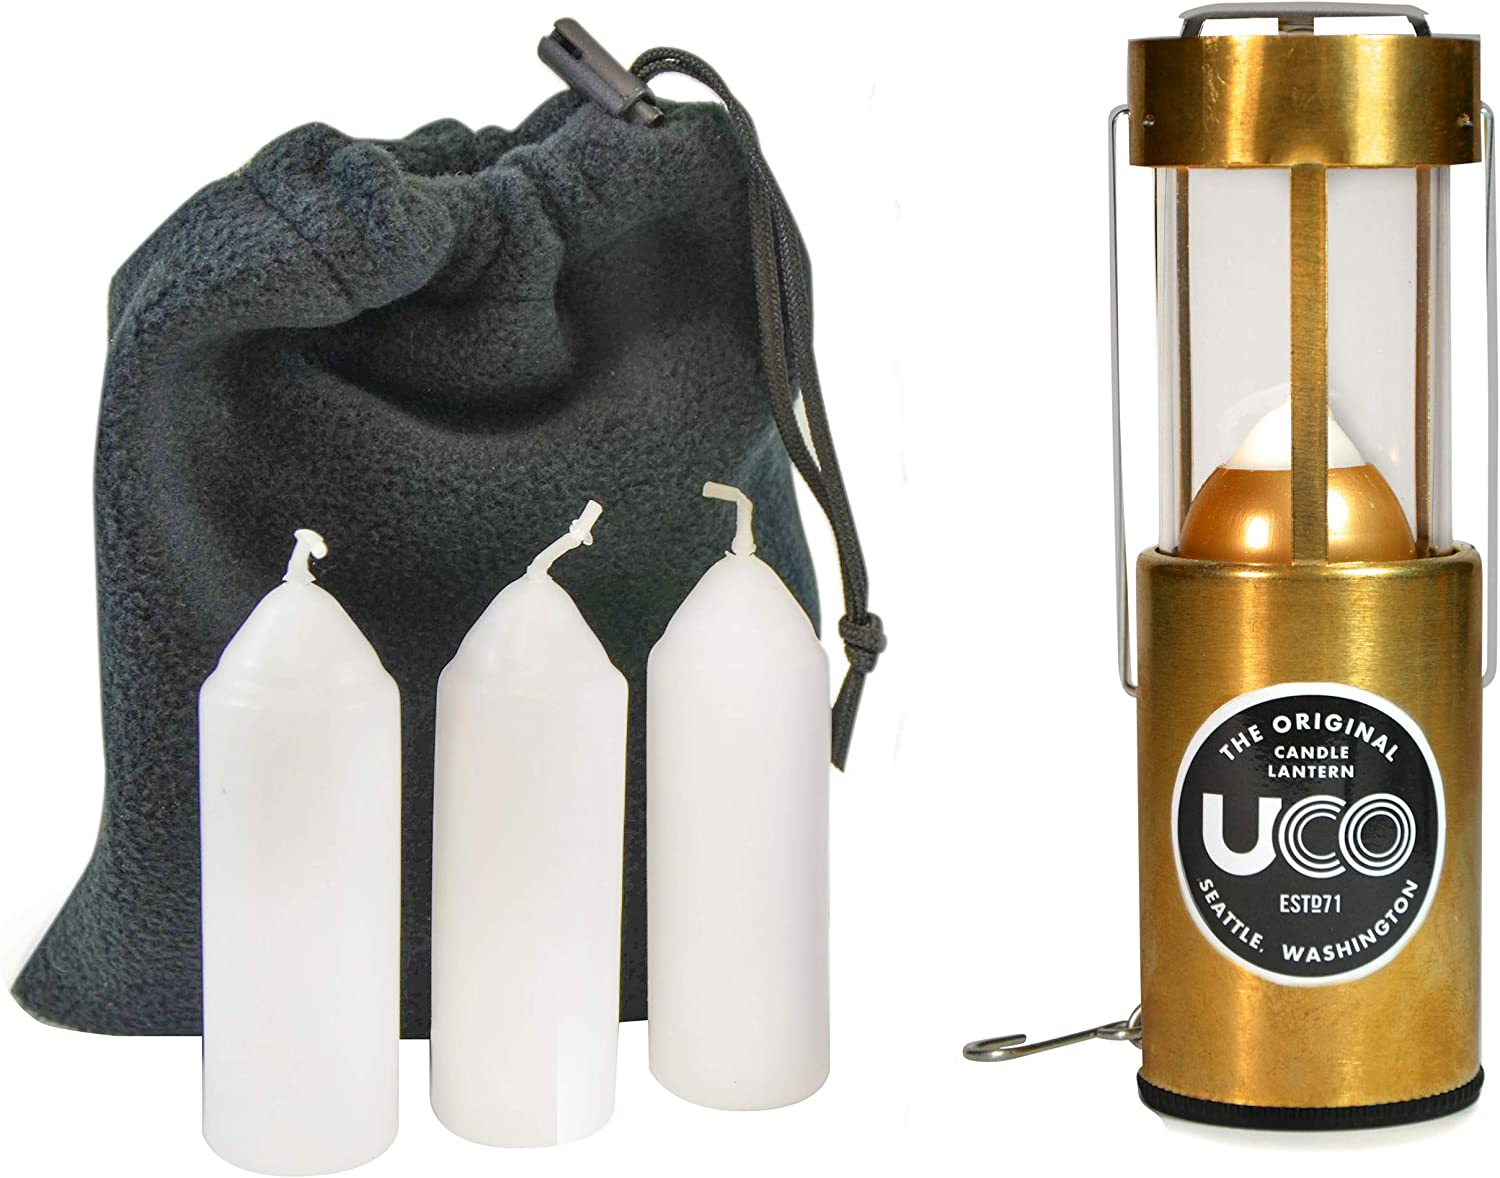 UCO Original Candle Lantern Value Tampa Mall Pack Candles Challenge the lowest price of Japan and 3 with Storag